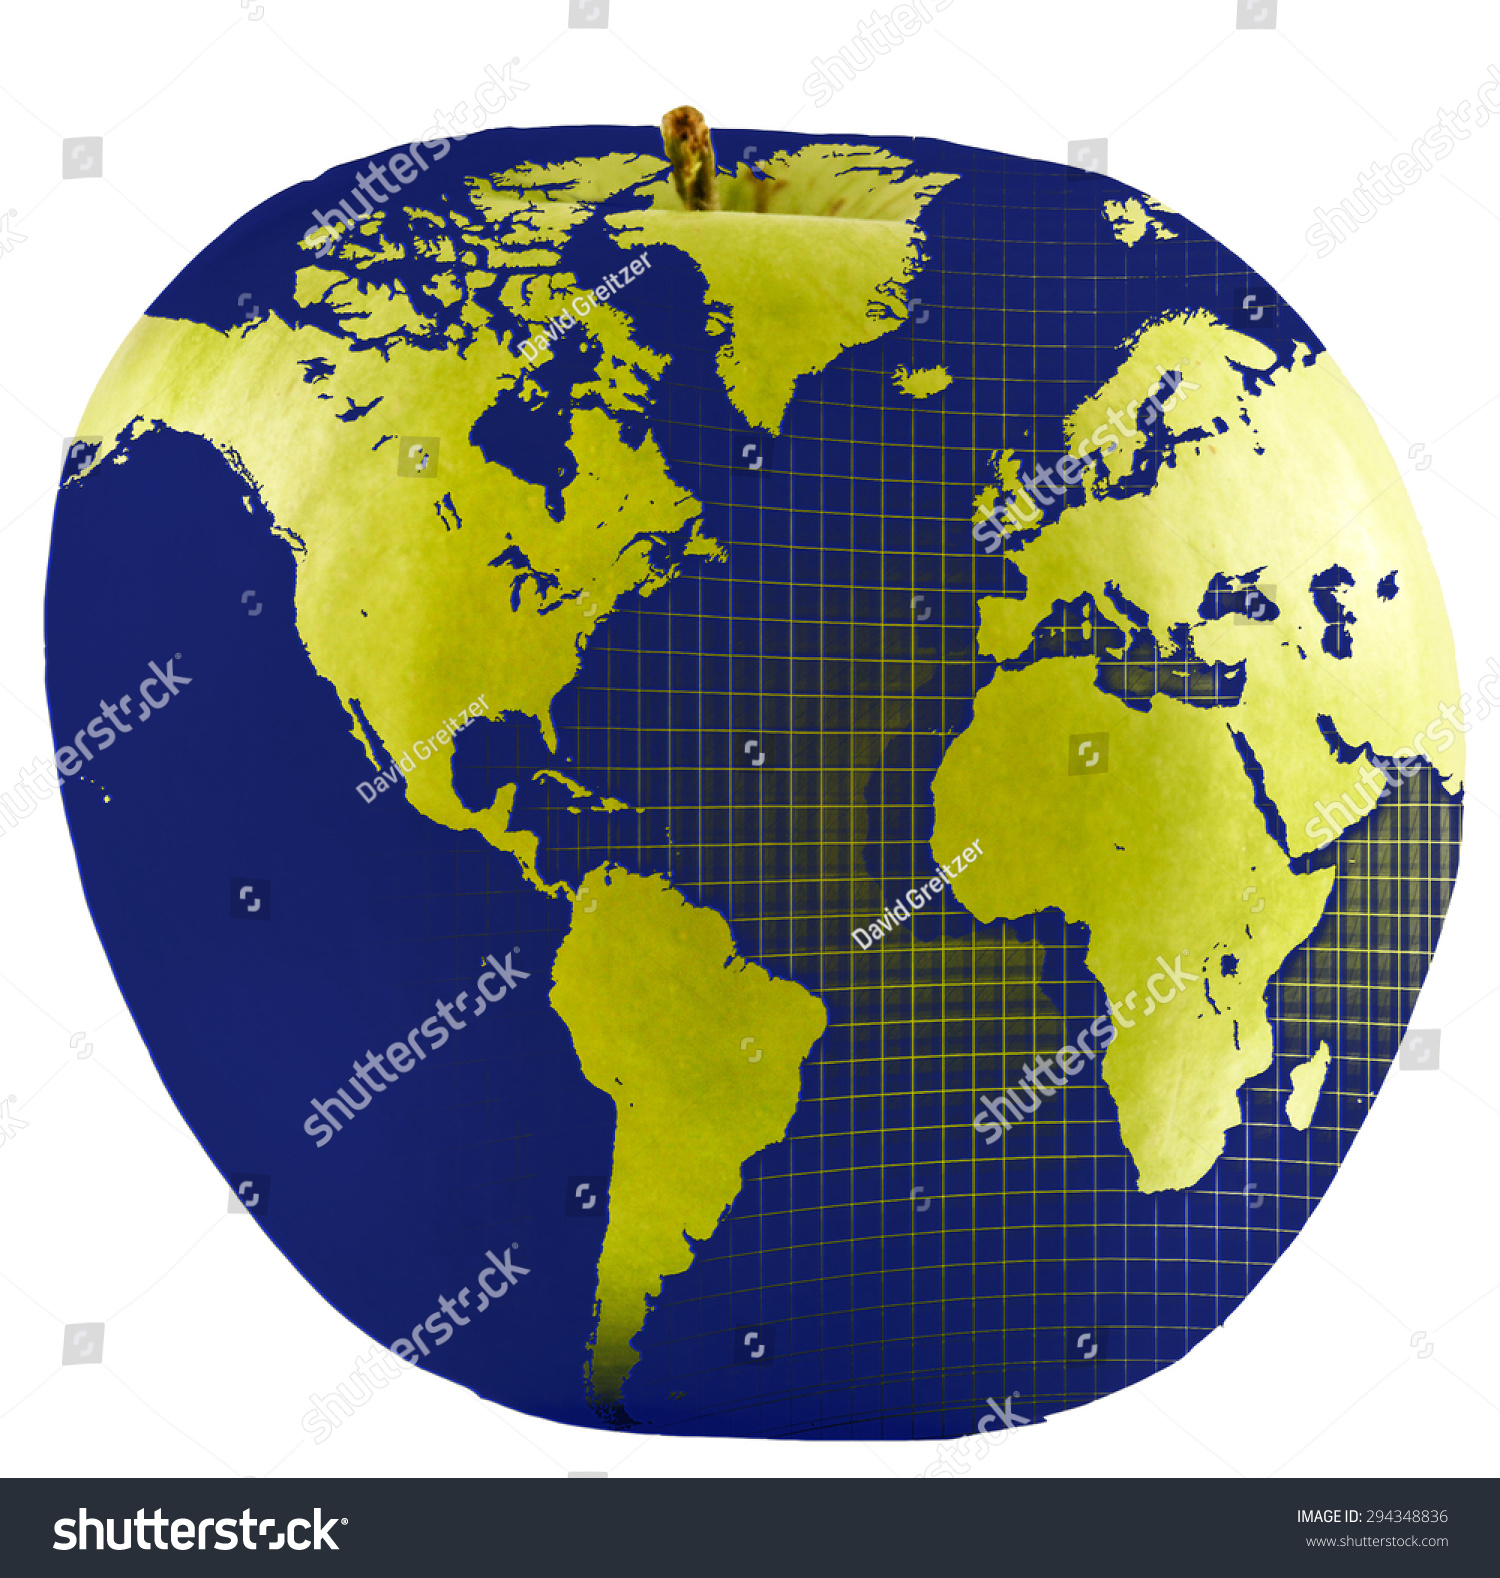 Global education apple world blue map stock photo 294348836 global education apple world blue map stock photo 294348836 shutterstock gumiabroncs Images